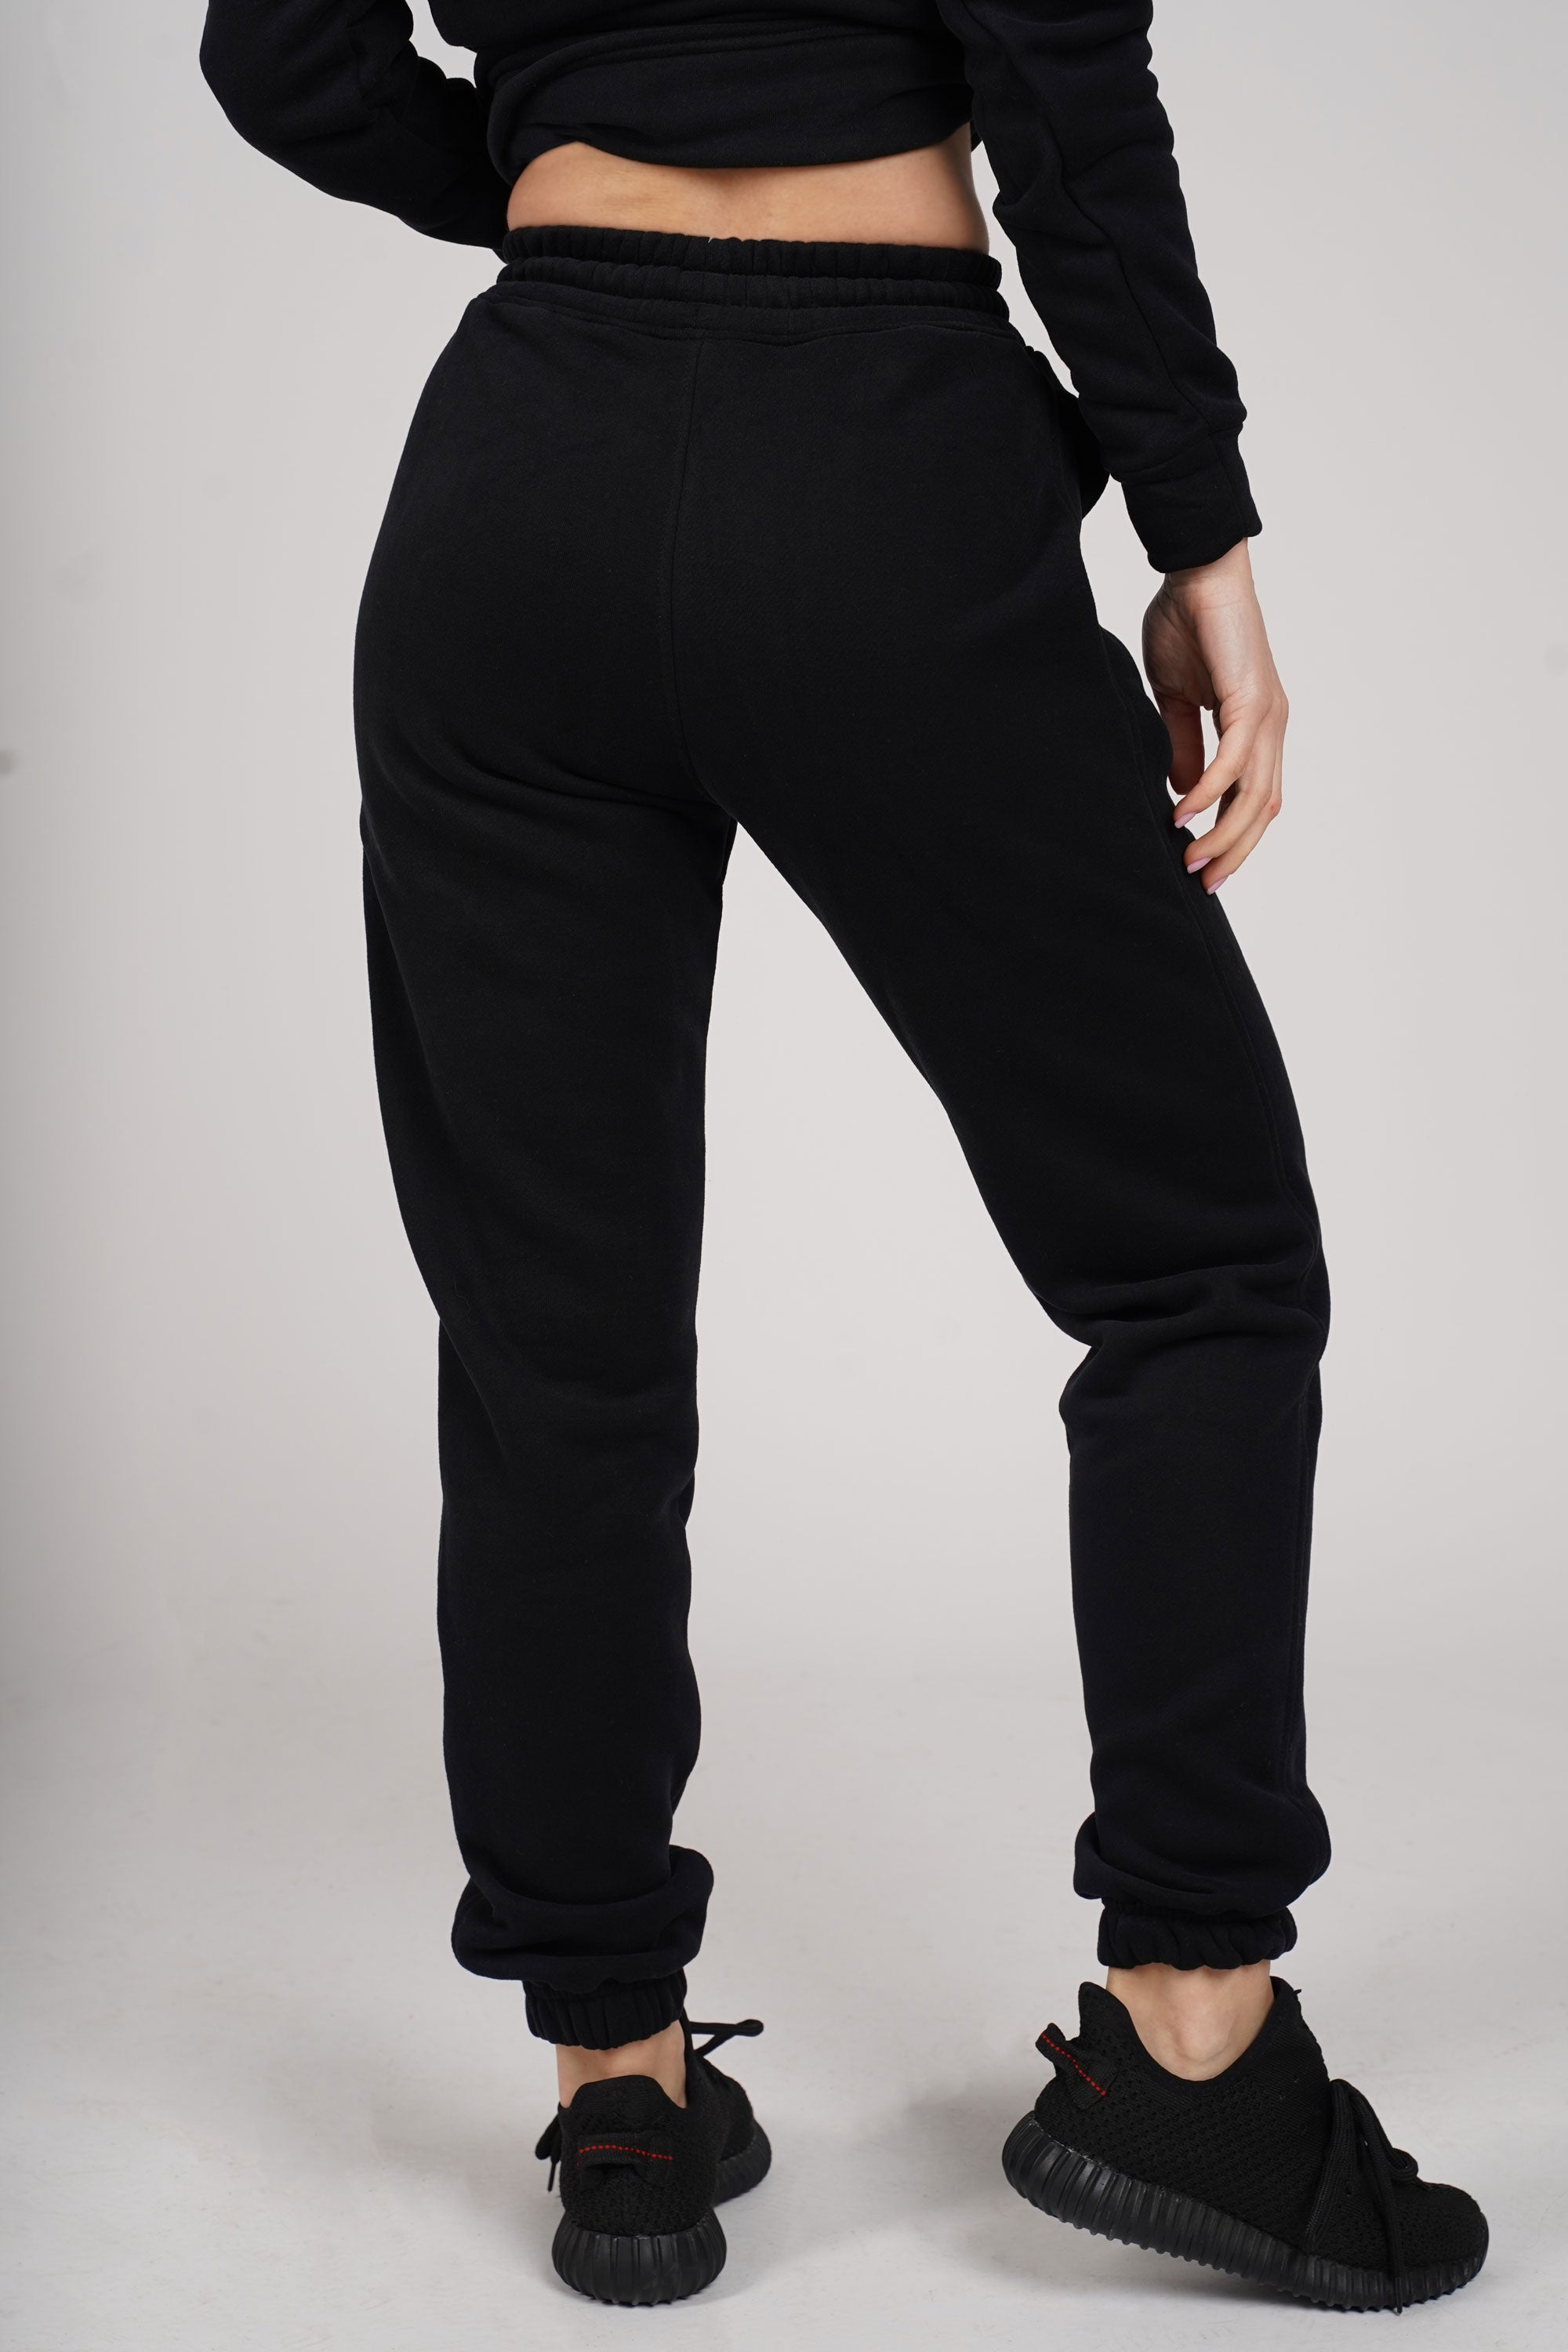 Black Oversize Sweatpants - C112025